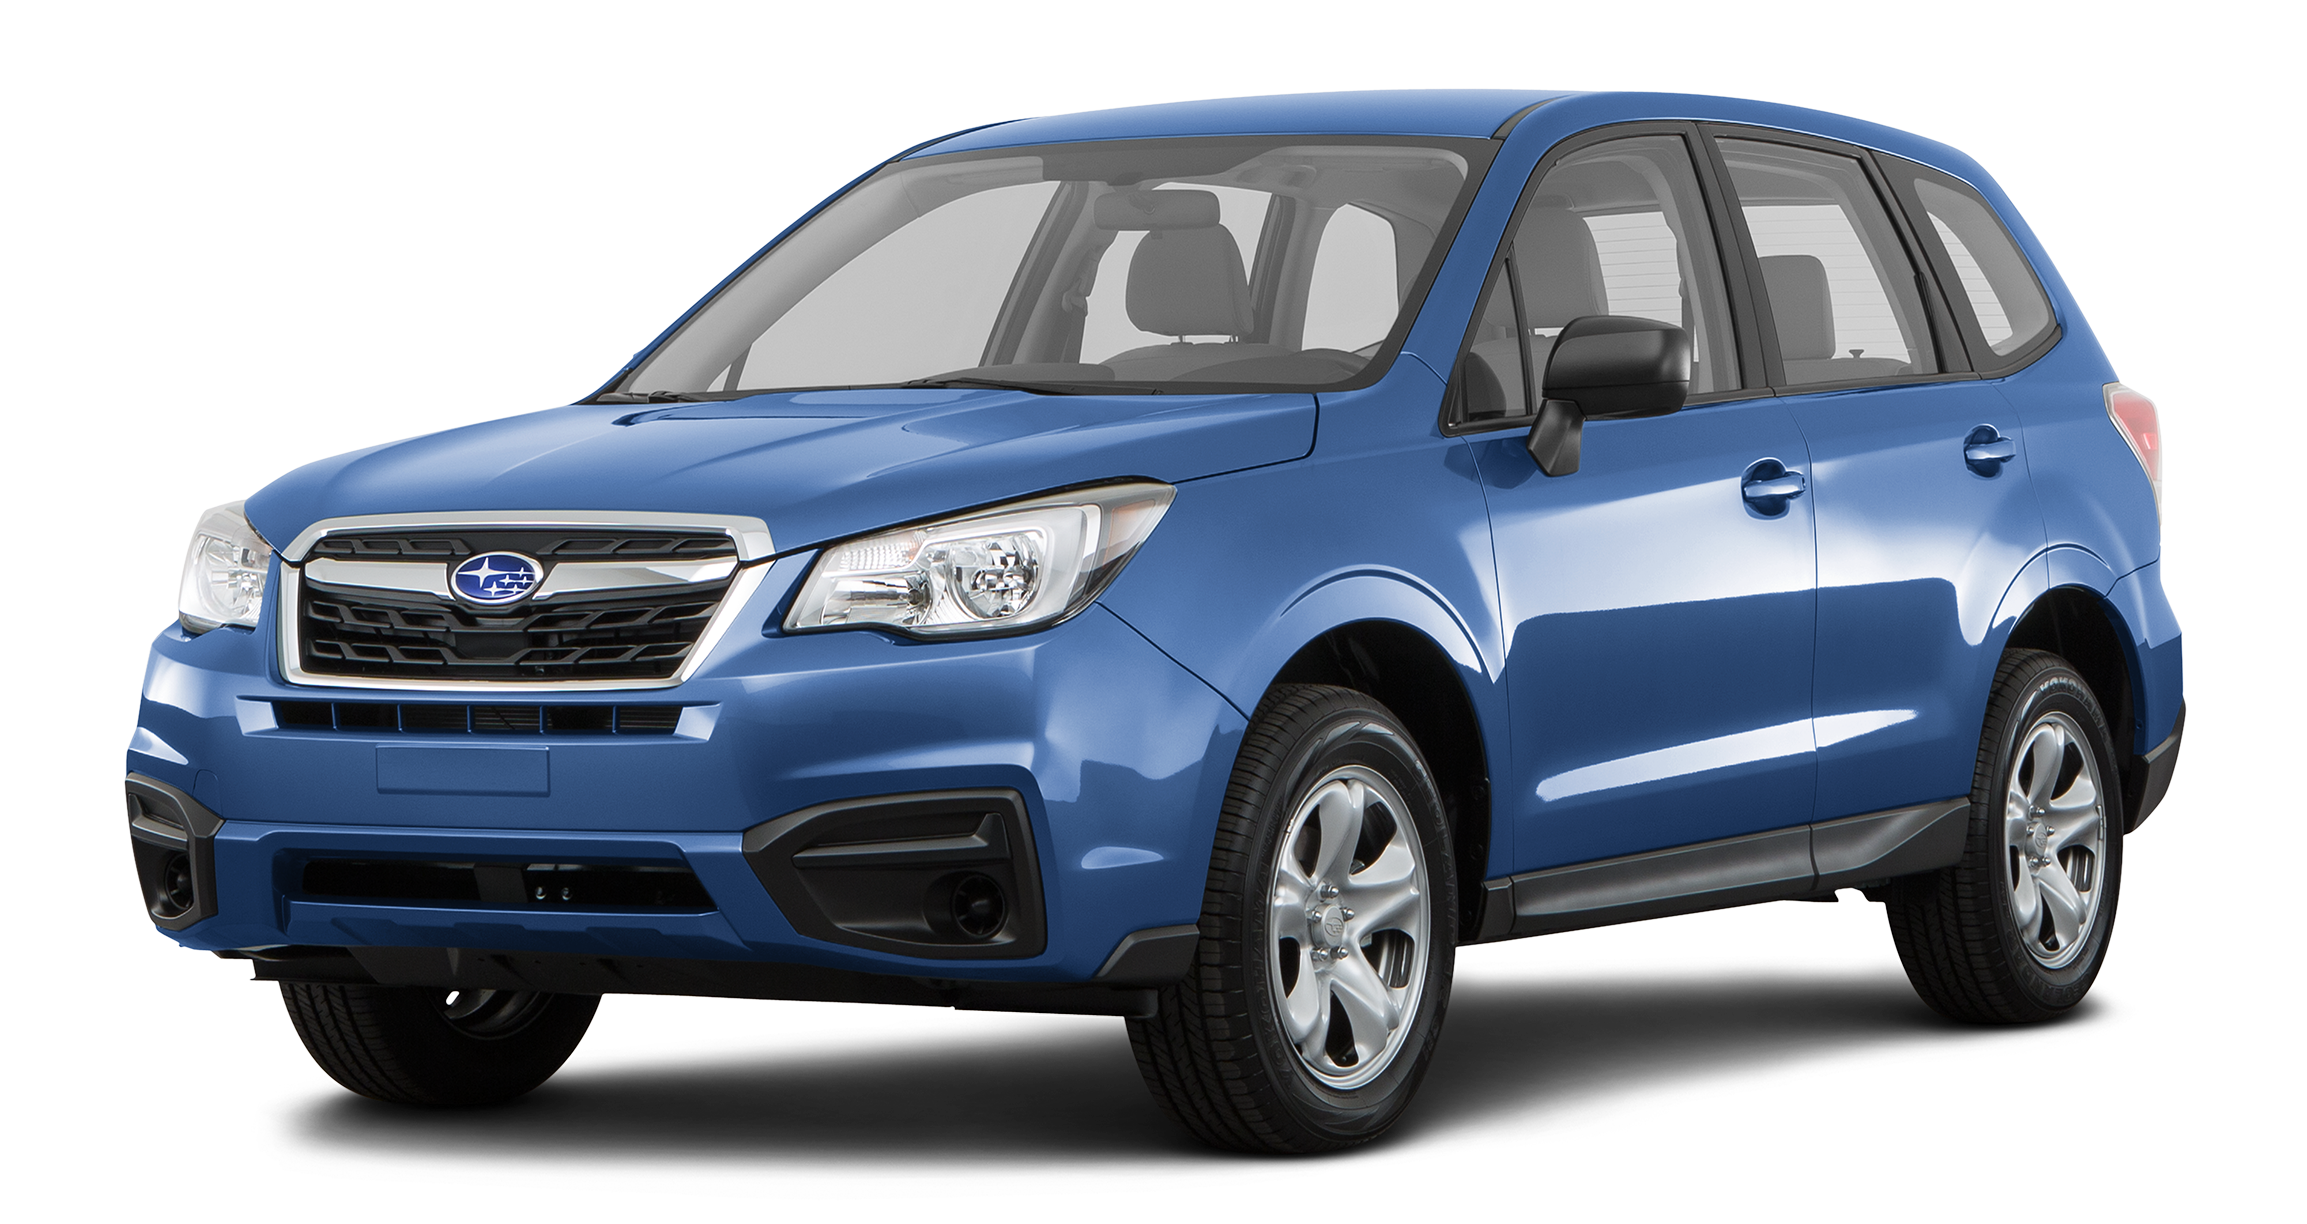 2018 Subaru Forester or 2018 Subaru Crosstrek